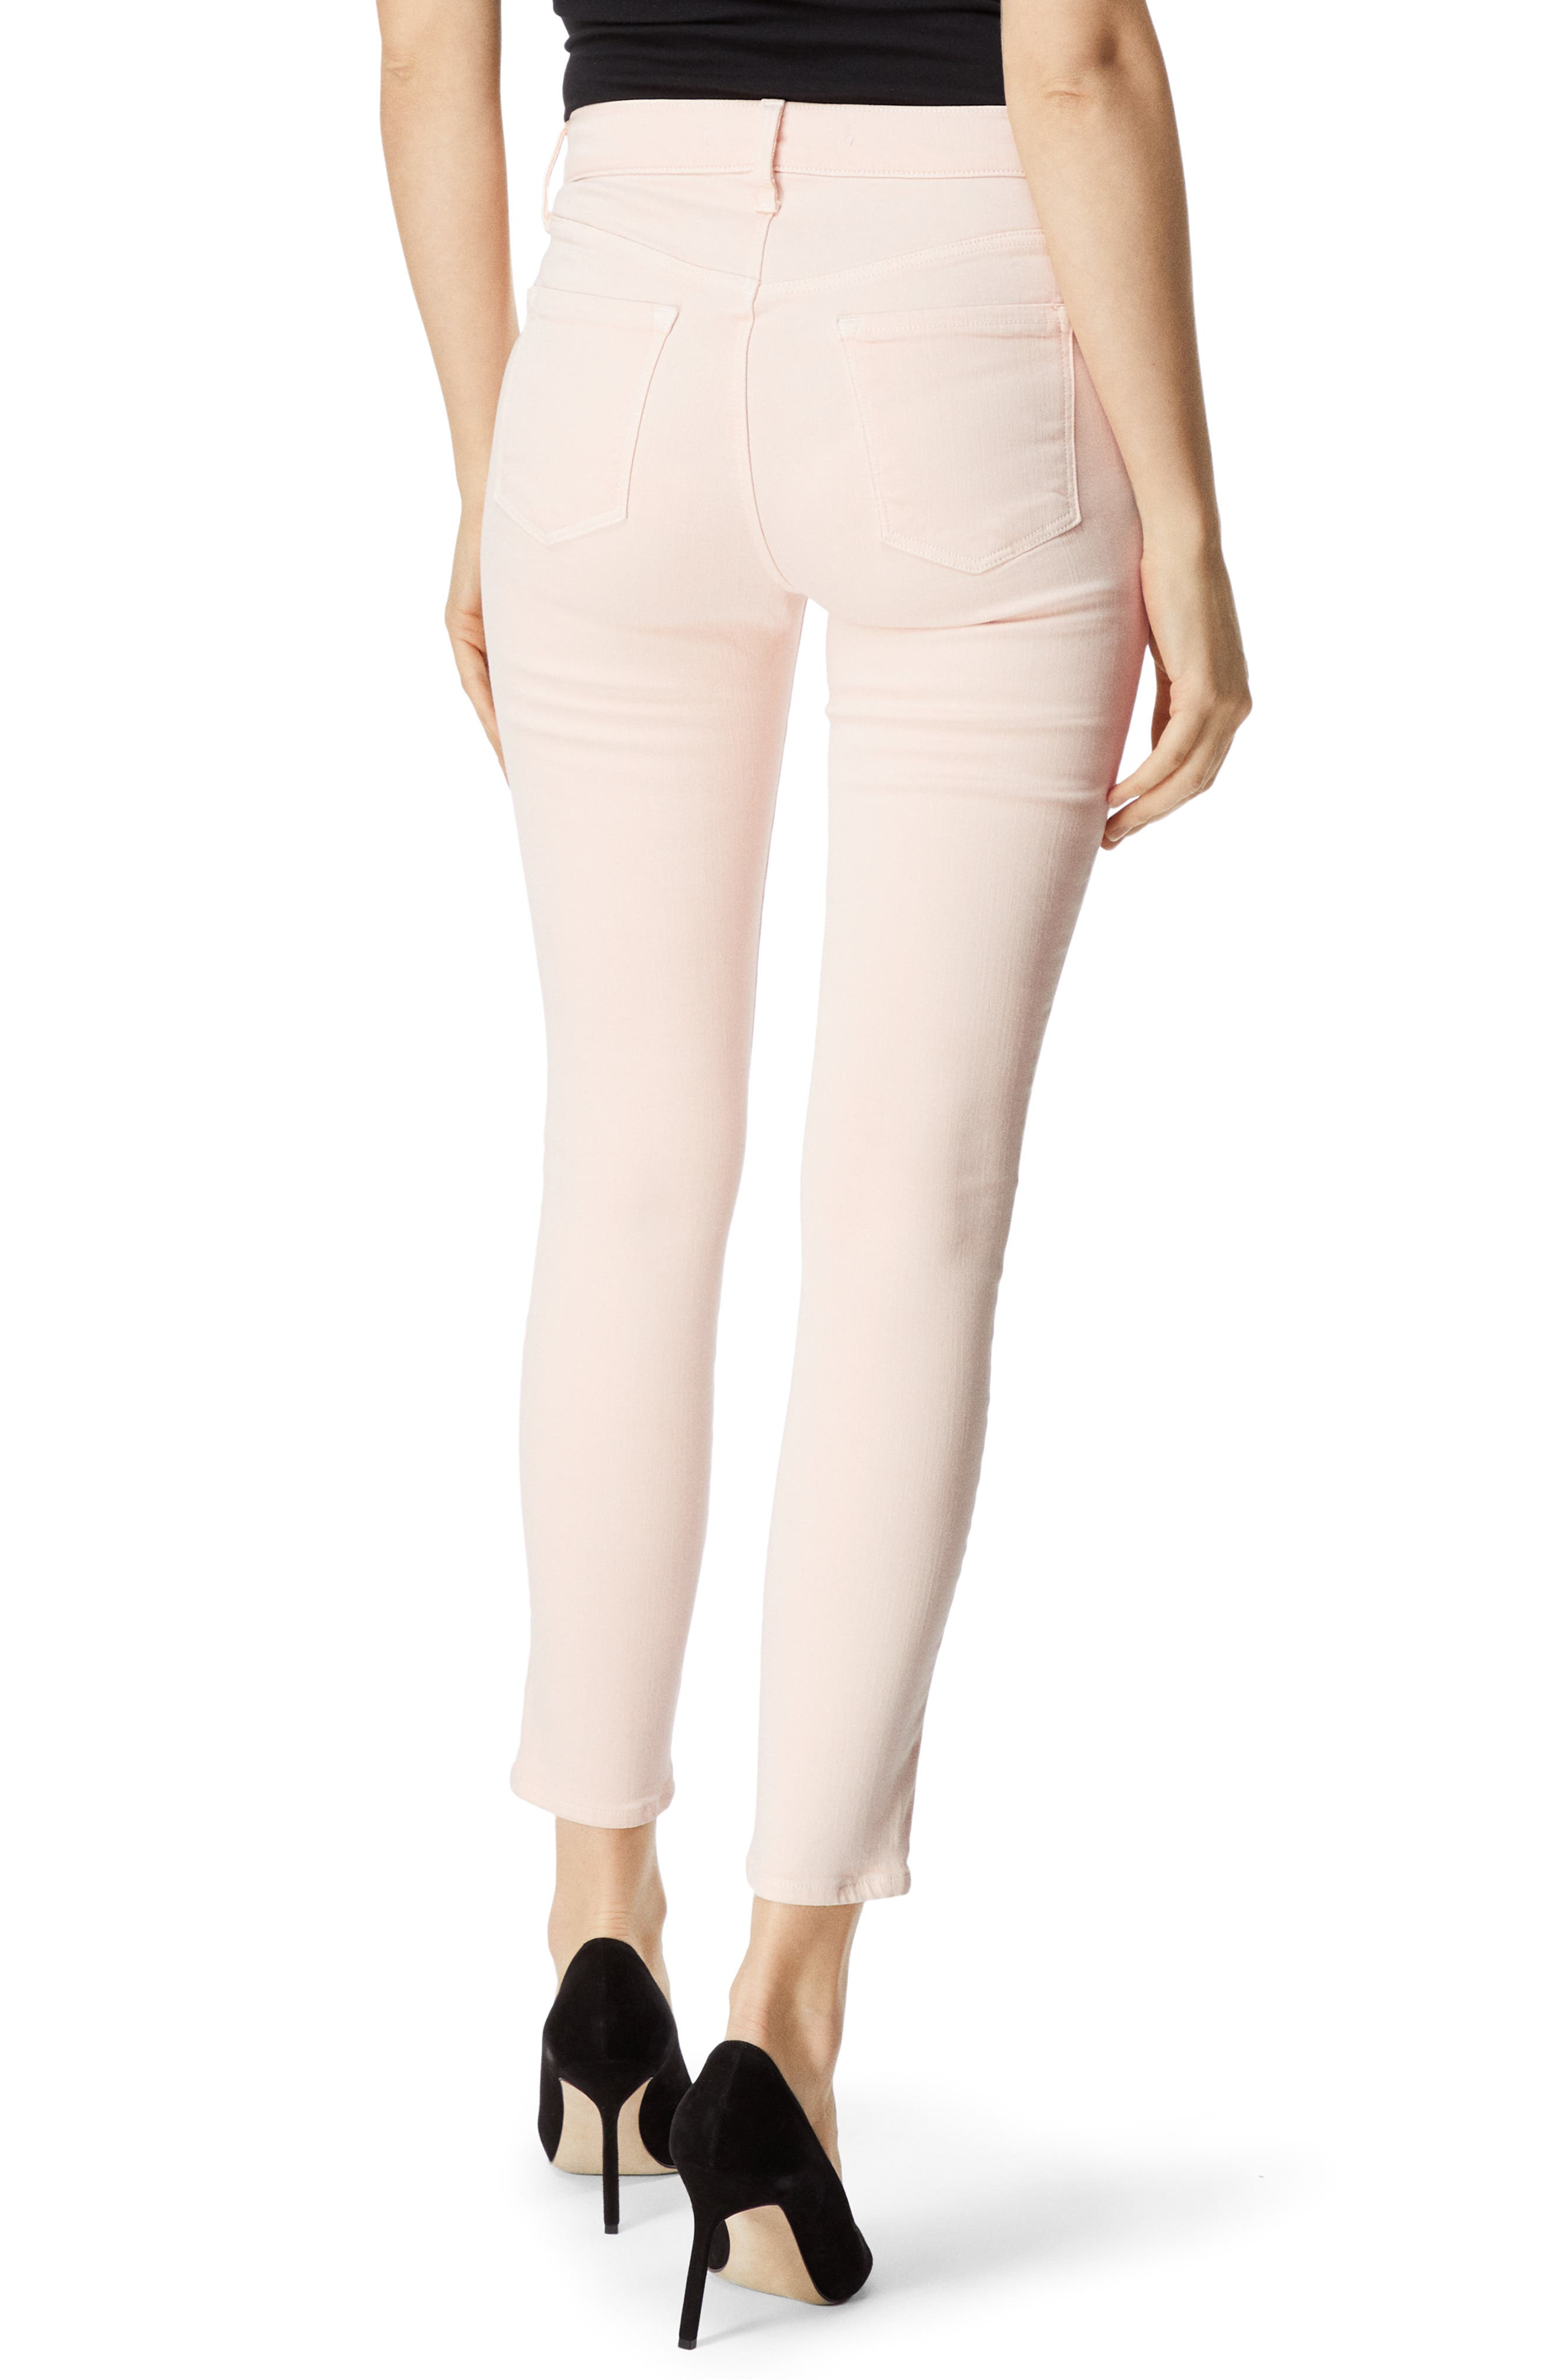 Alana High Waist Ankle Skinny Jeans,                             Alternate thumbnail 2, color,                             DISTRESSED LULLED